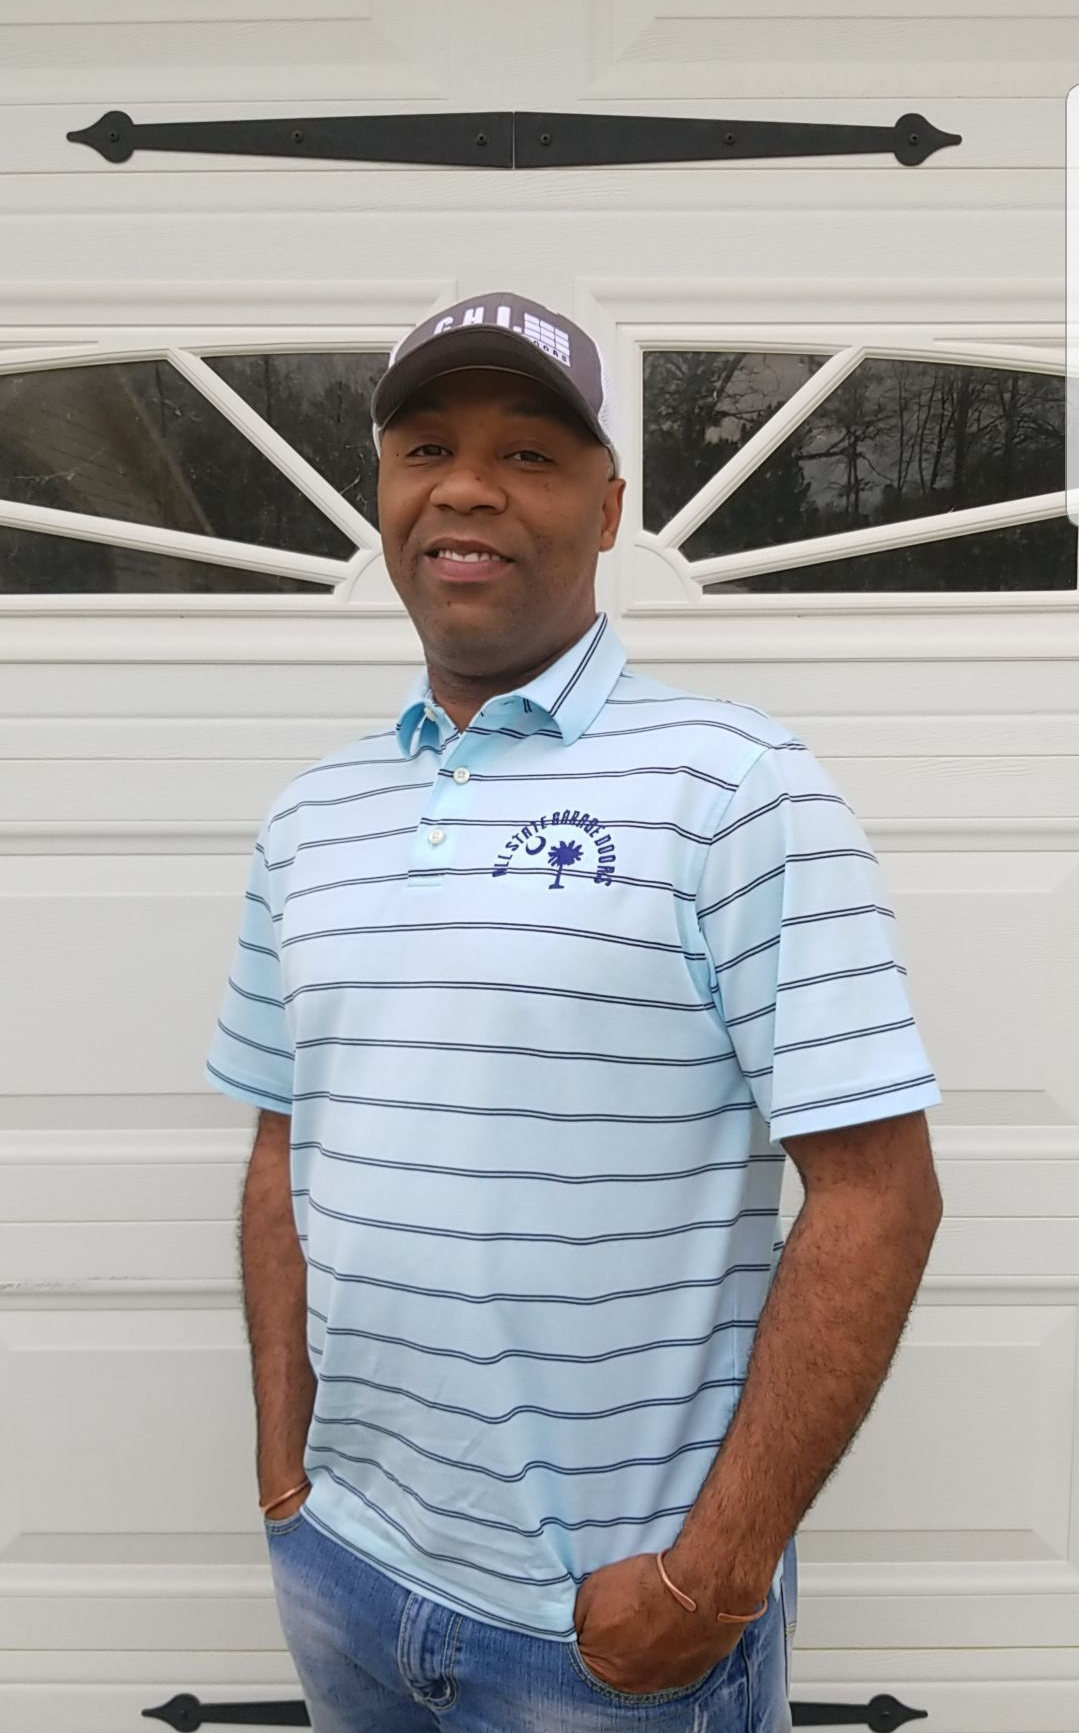 About Us - Allstate Garage Doors was founded by Antonio Cannady in 2018. Antonio has extensive experience in home construction, renovation, and repair. After working in the garage door industry, Antonio established Allstate Garage Doors to help fill a void for dependable, affordable garage door installation and repair.Our motto:Tough Doors, Loyal Service!